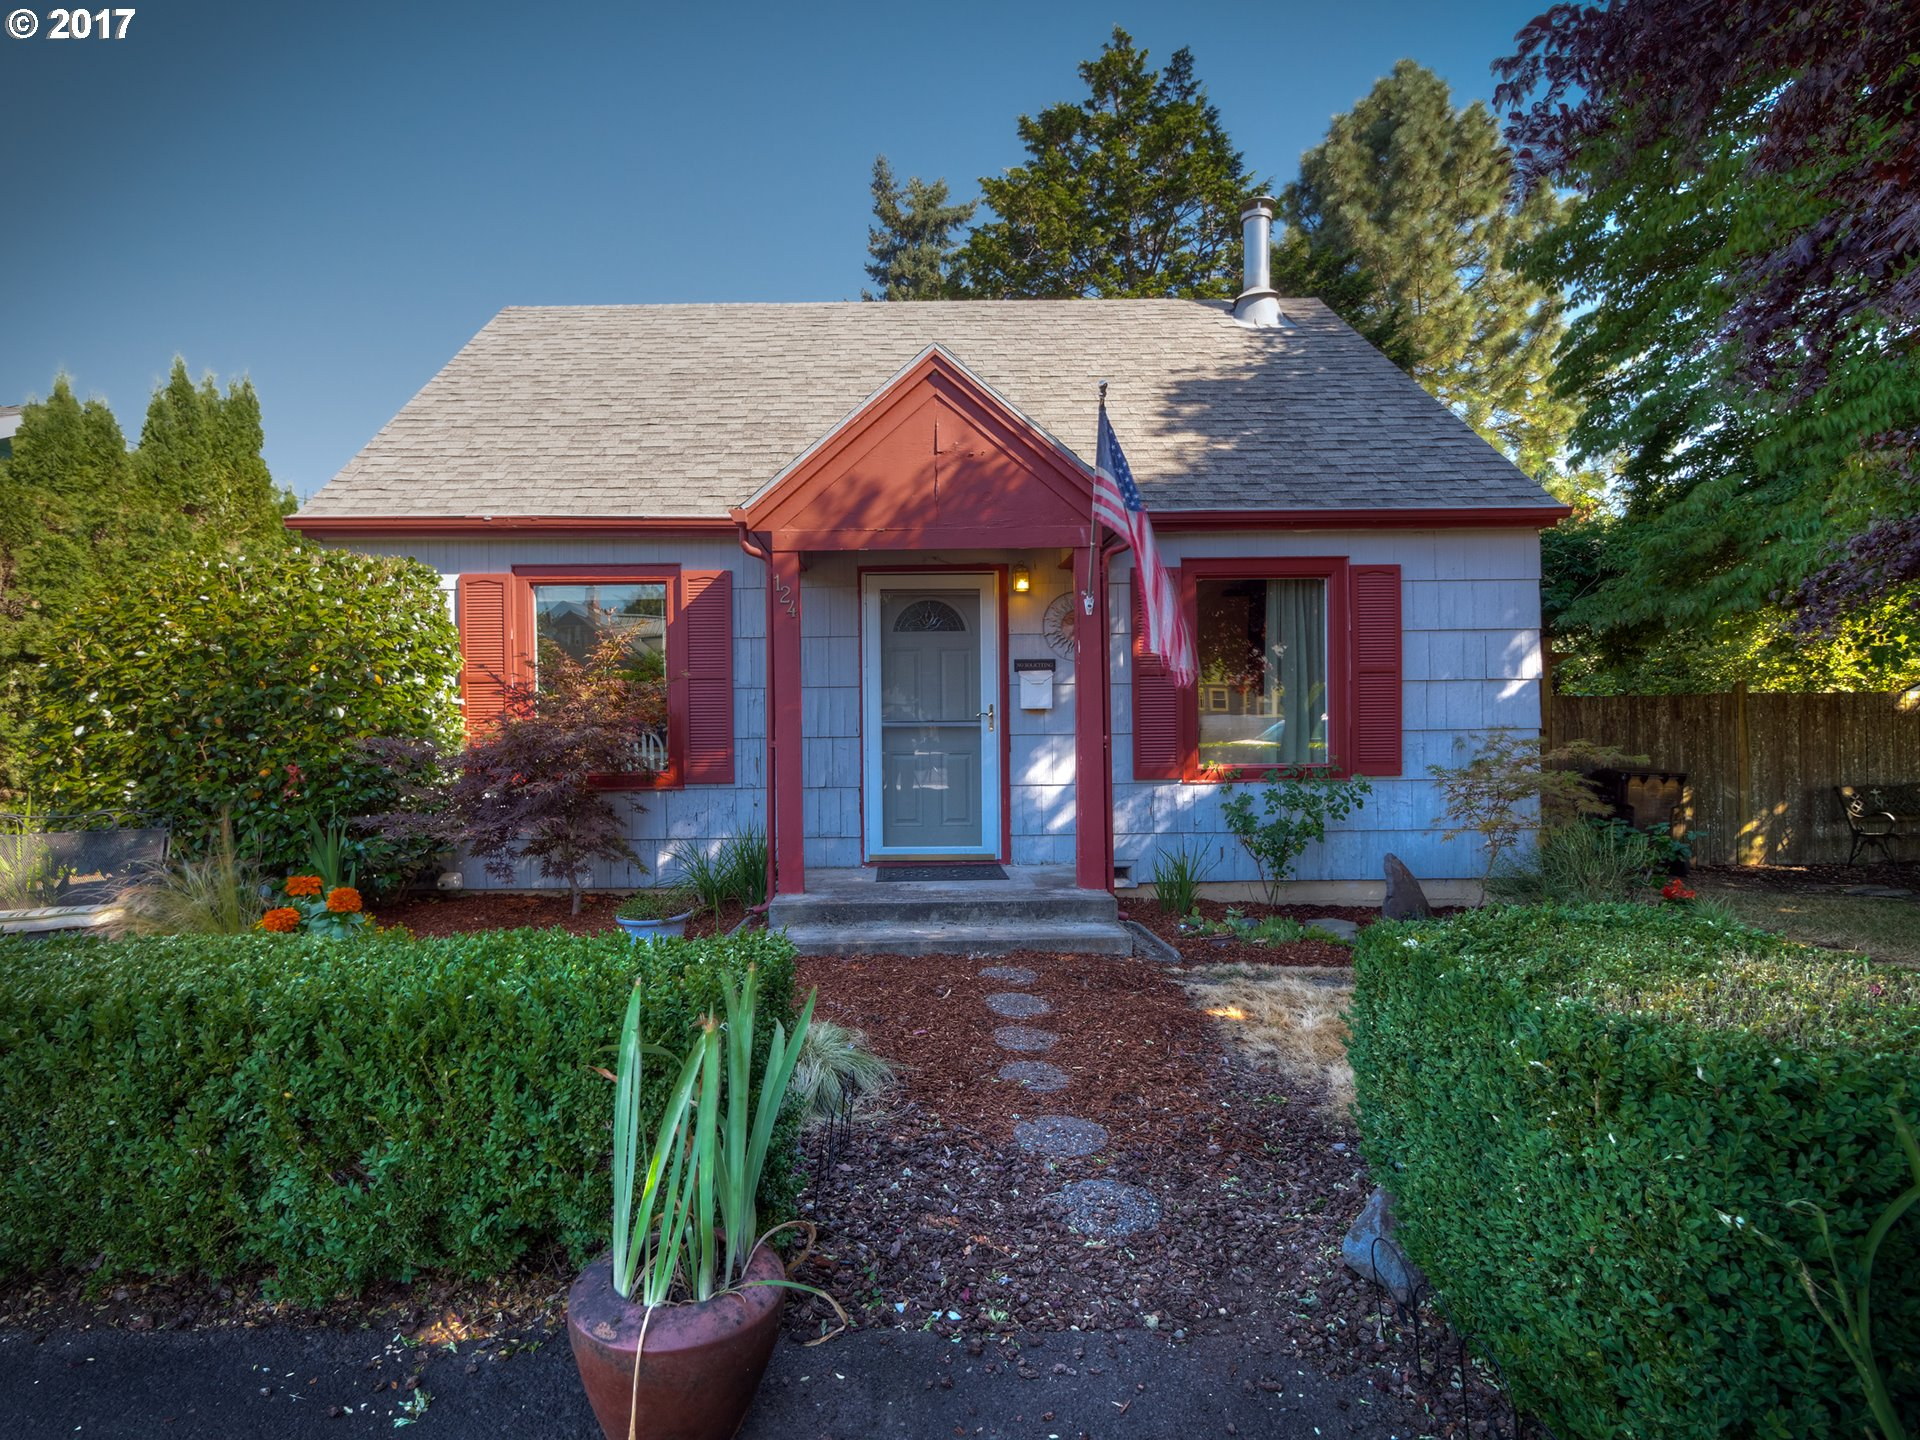 124 NE 5TH AVE, Canby, OR 97013